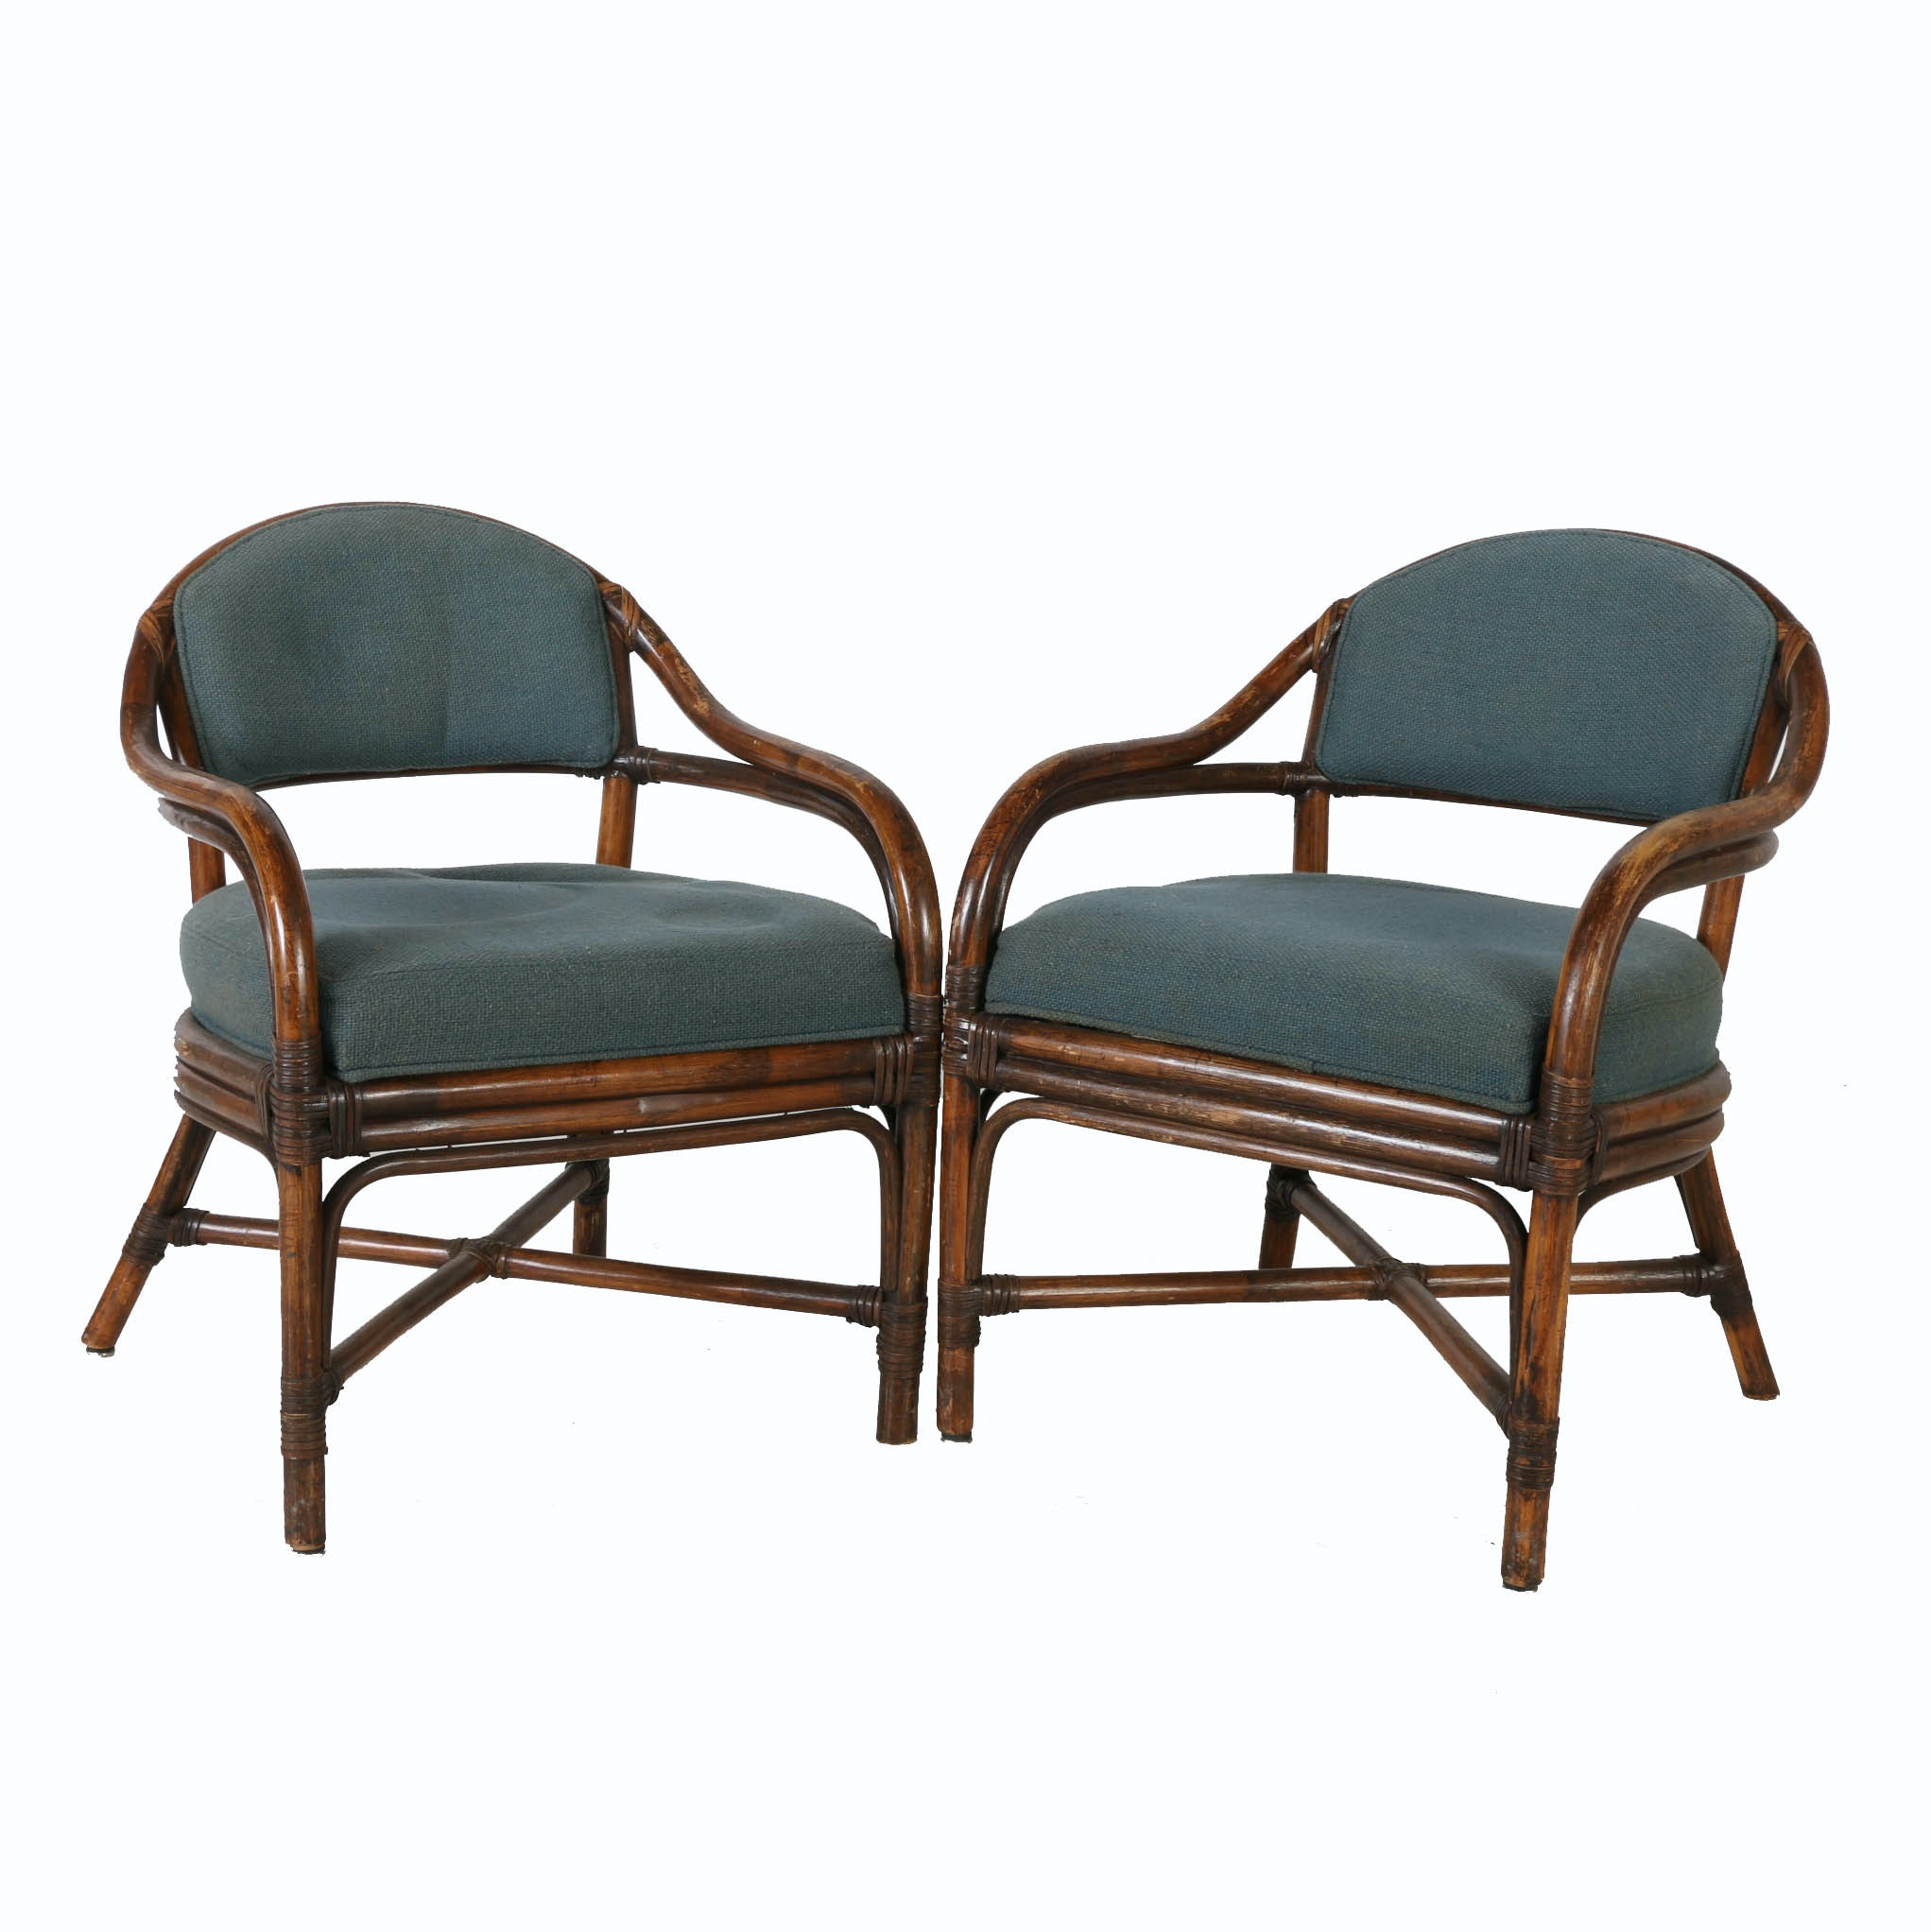 Late 20th Century Rattan Lounge Chairs